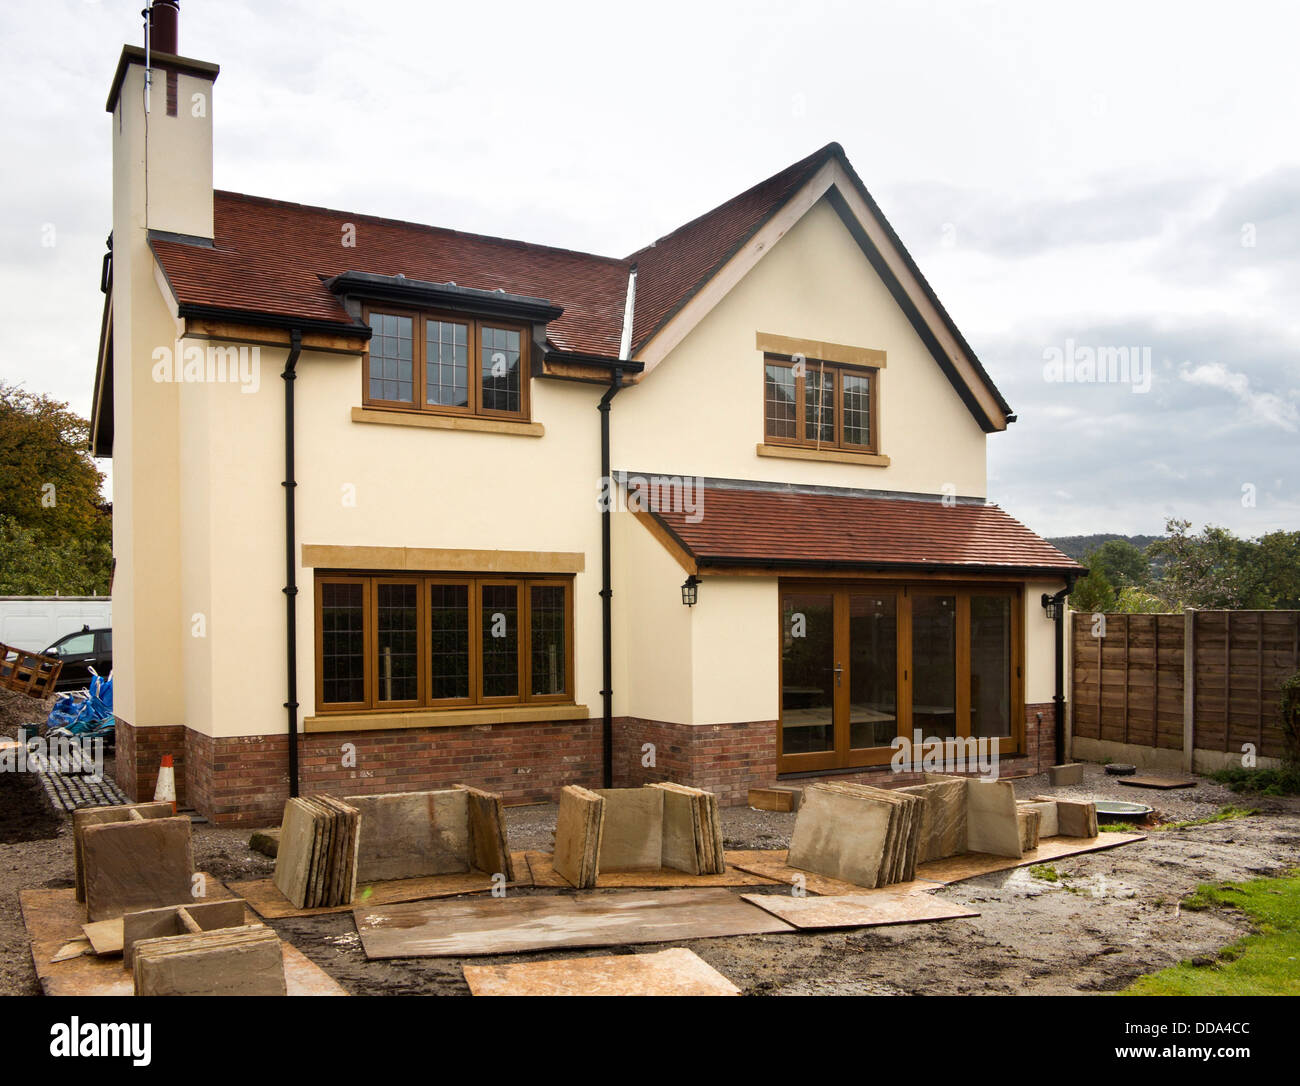 self building house, hard landscaping, sandstone paving slabs around edge of new-built property Stock Photo